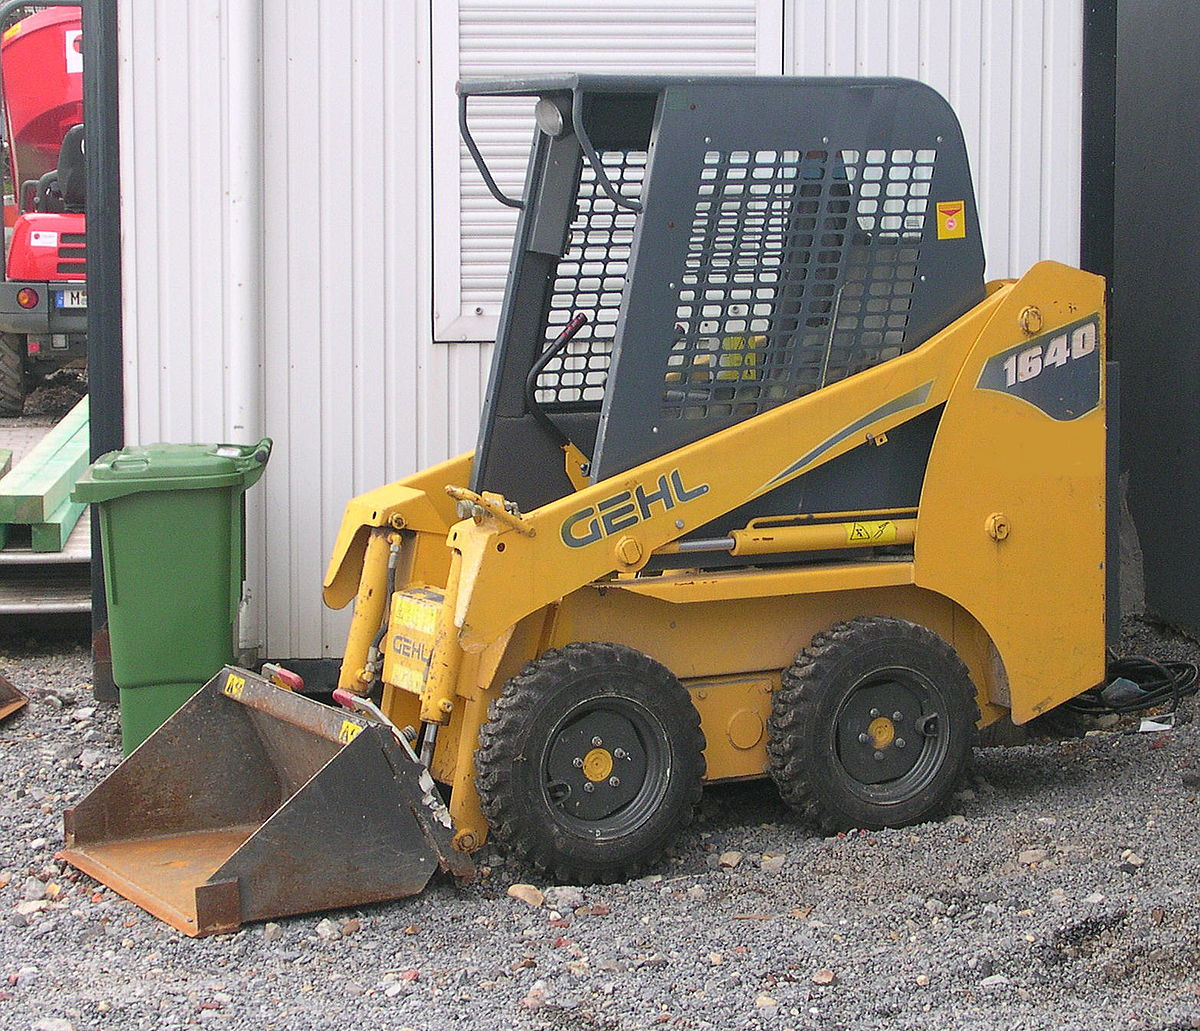 Loader. Loader classification 9